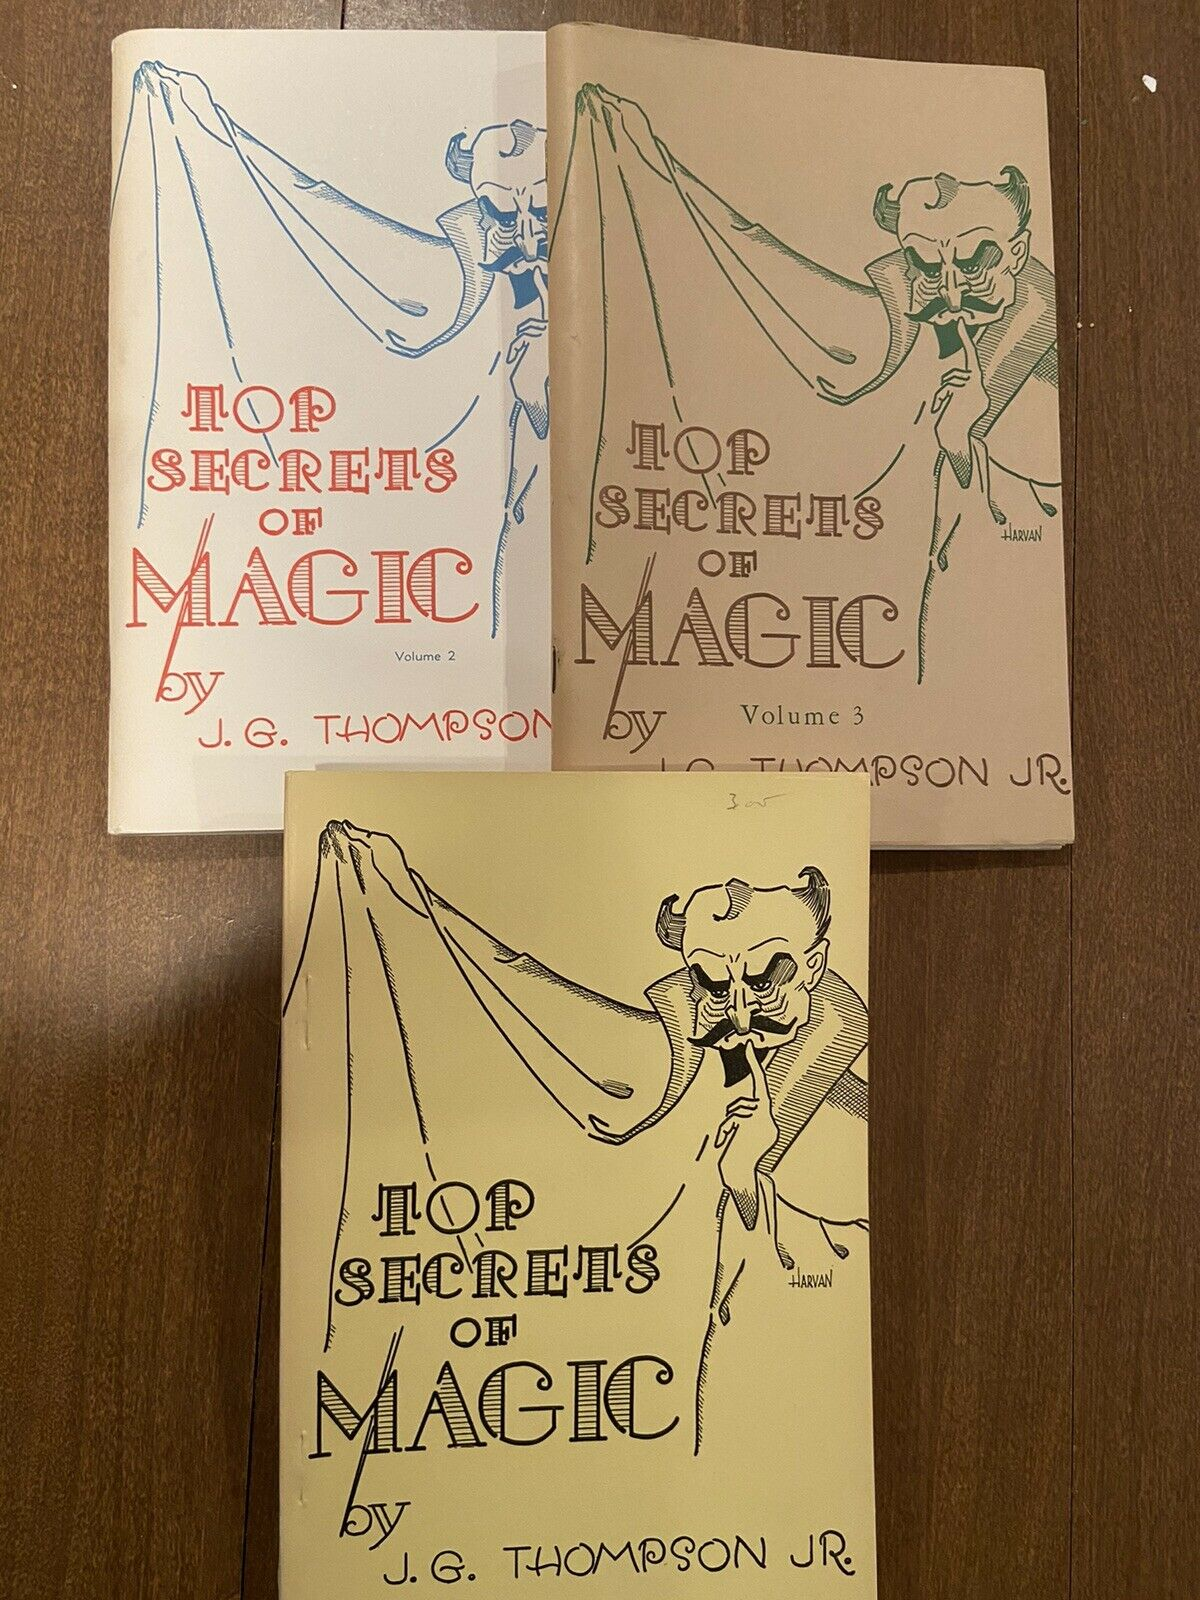 Top Secrets of Magic by J.G. Thompson – Volumes 1, 2 and 3 – Complete set